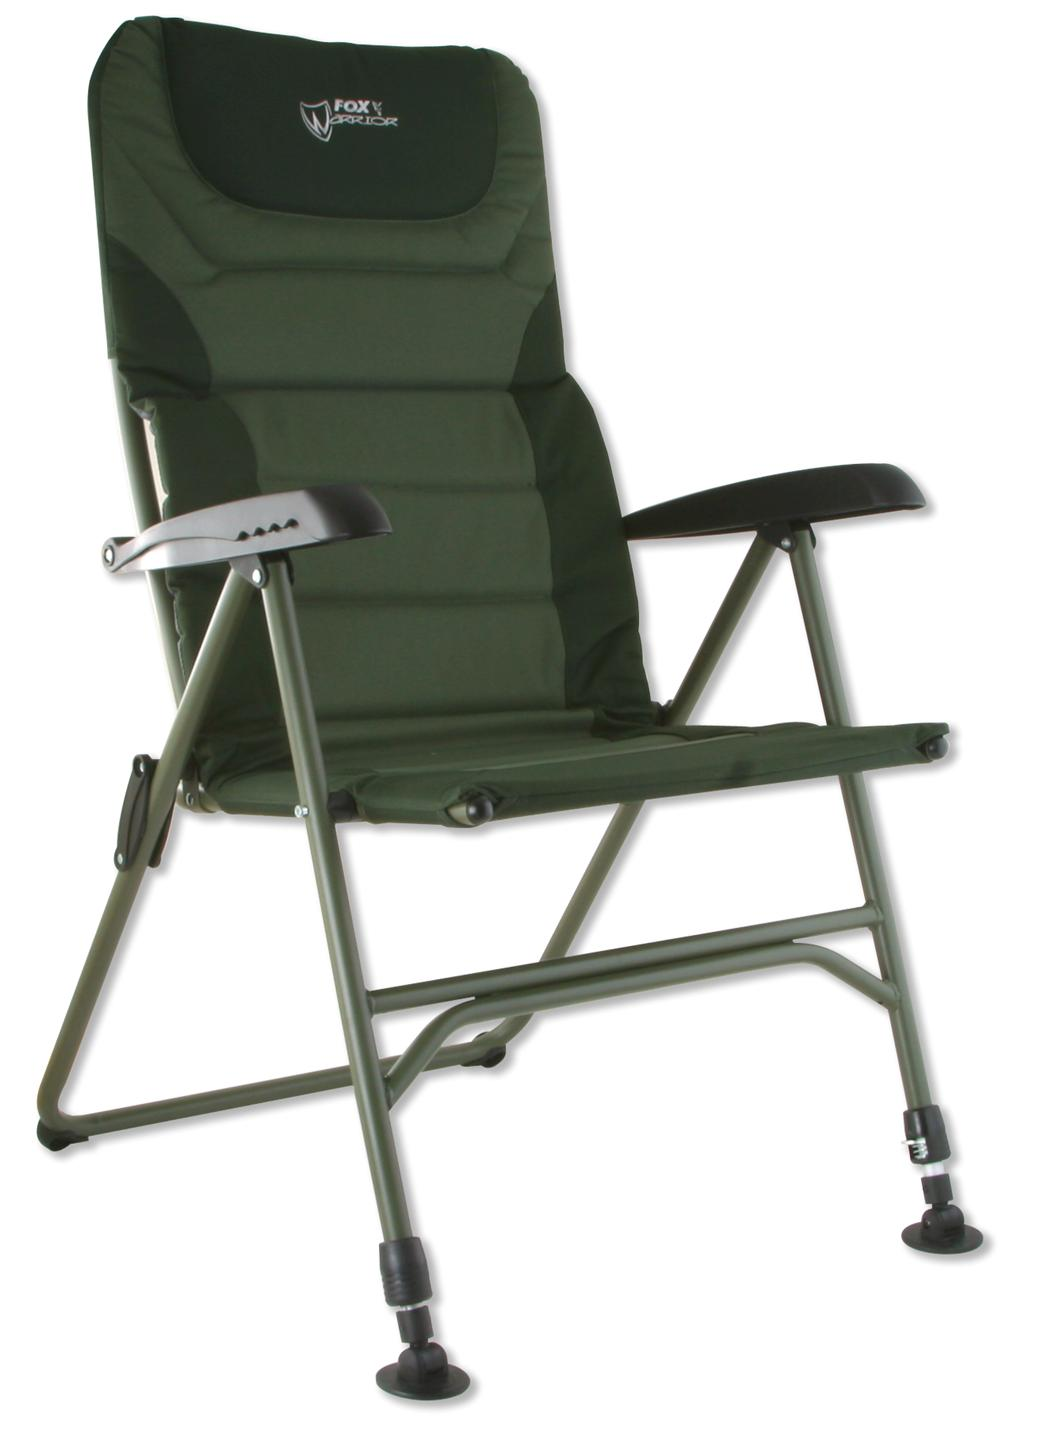 fishing chair with arms stool for standing desk fox carp warrior arm xl or compact